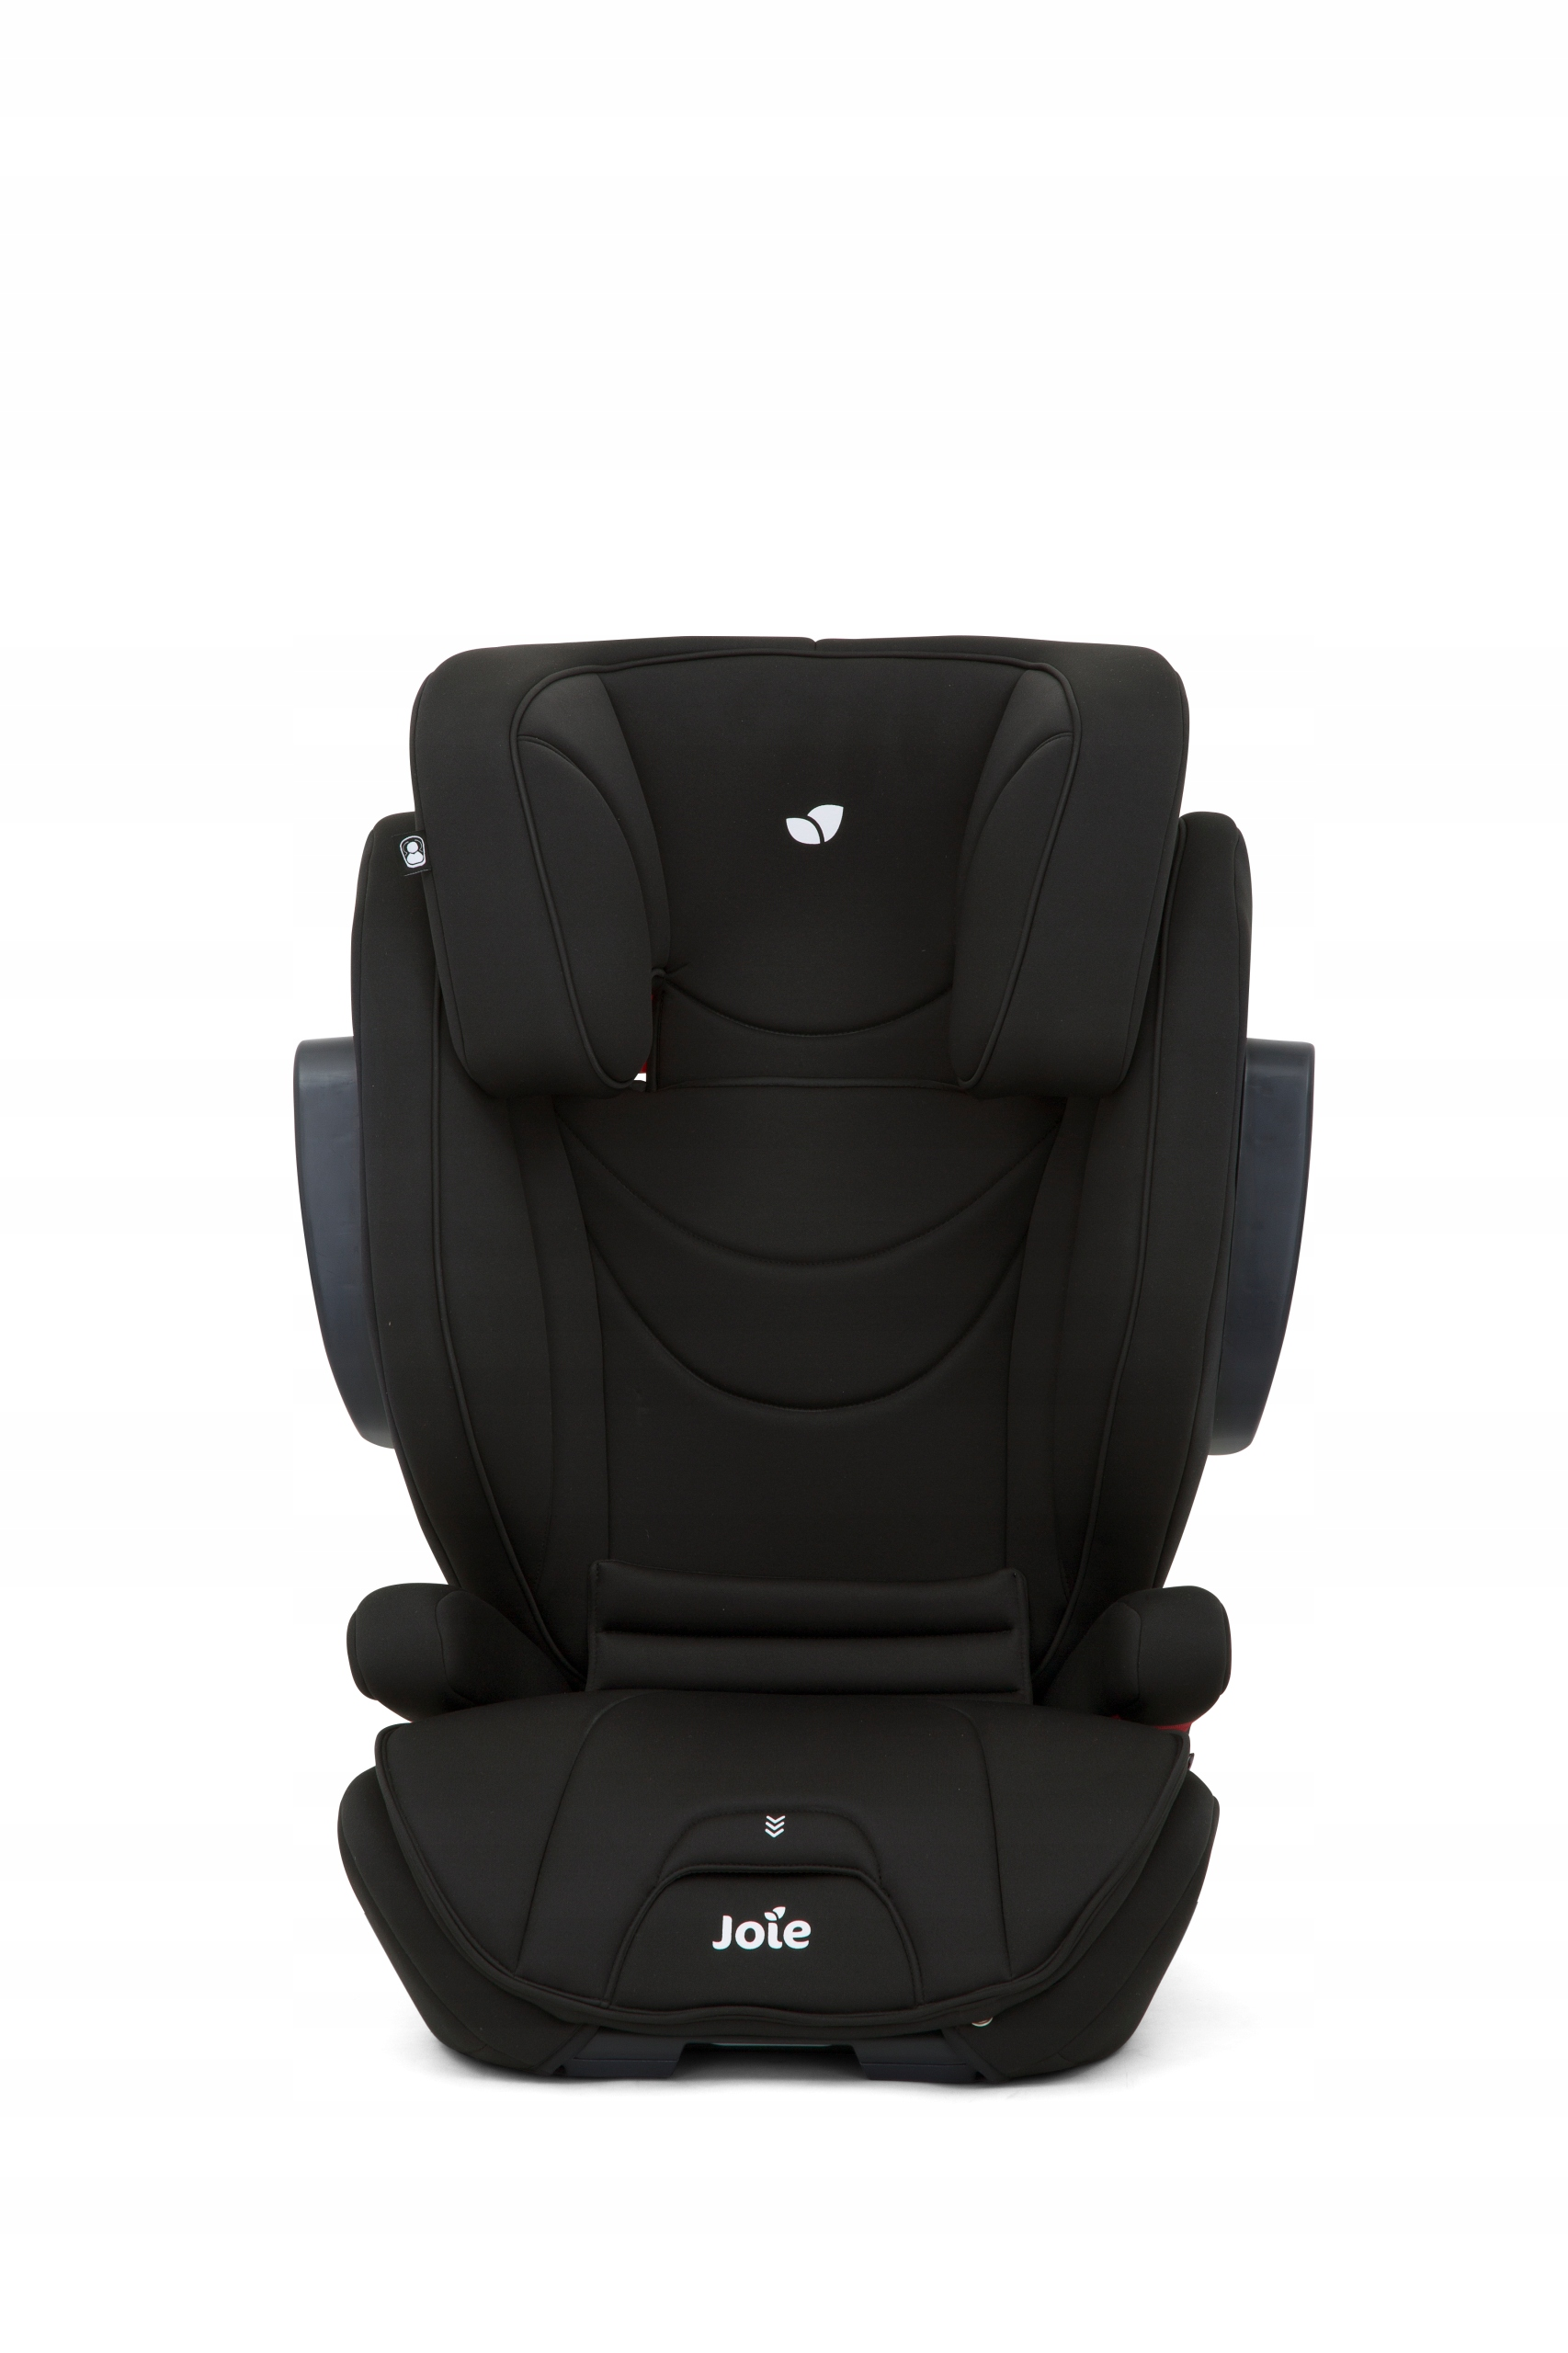 SIÈGE AUTO JOIE TRAVER 15-36 KG ISOFIX Code fabricant C1701AACOL000